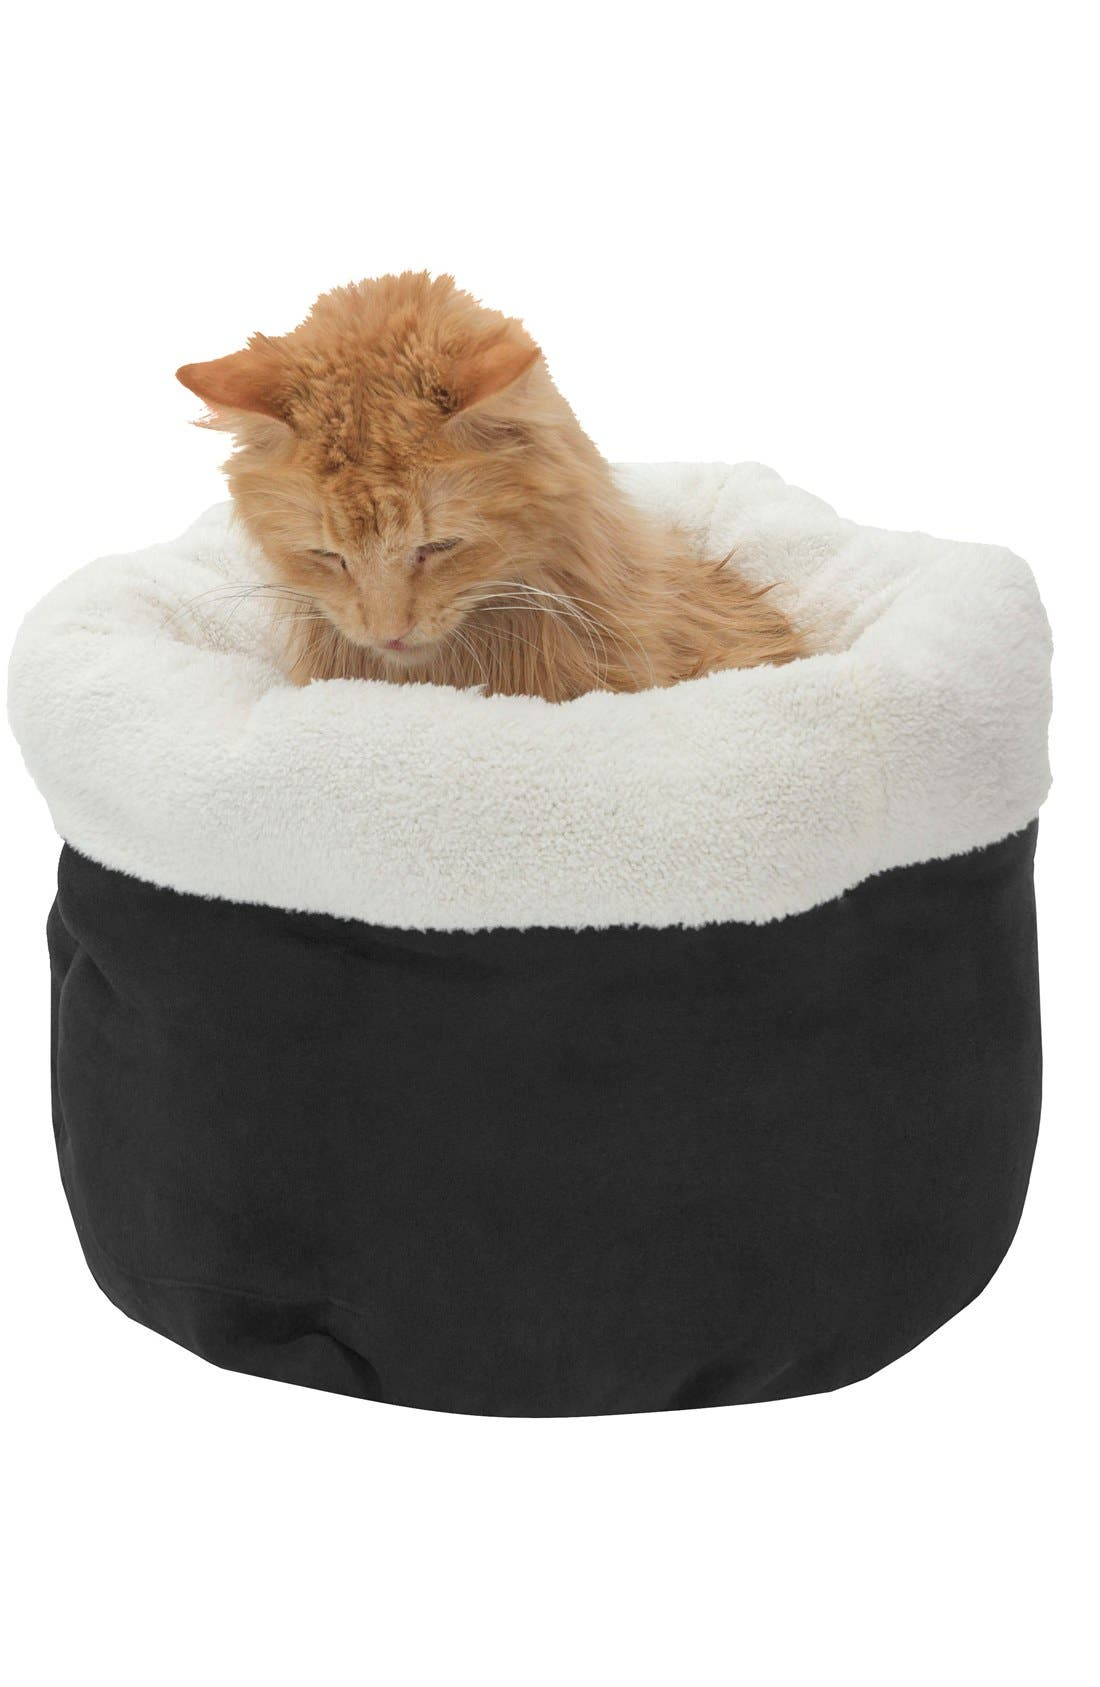 Barclay Pet Bed,                         Main,                         color, 001